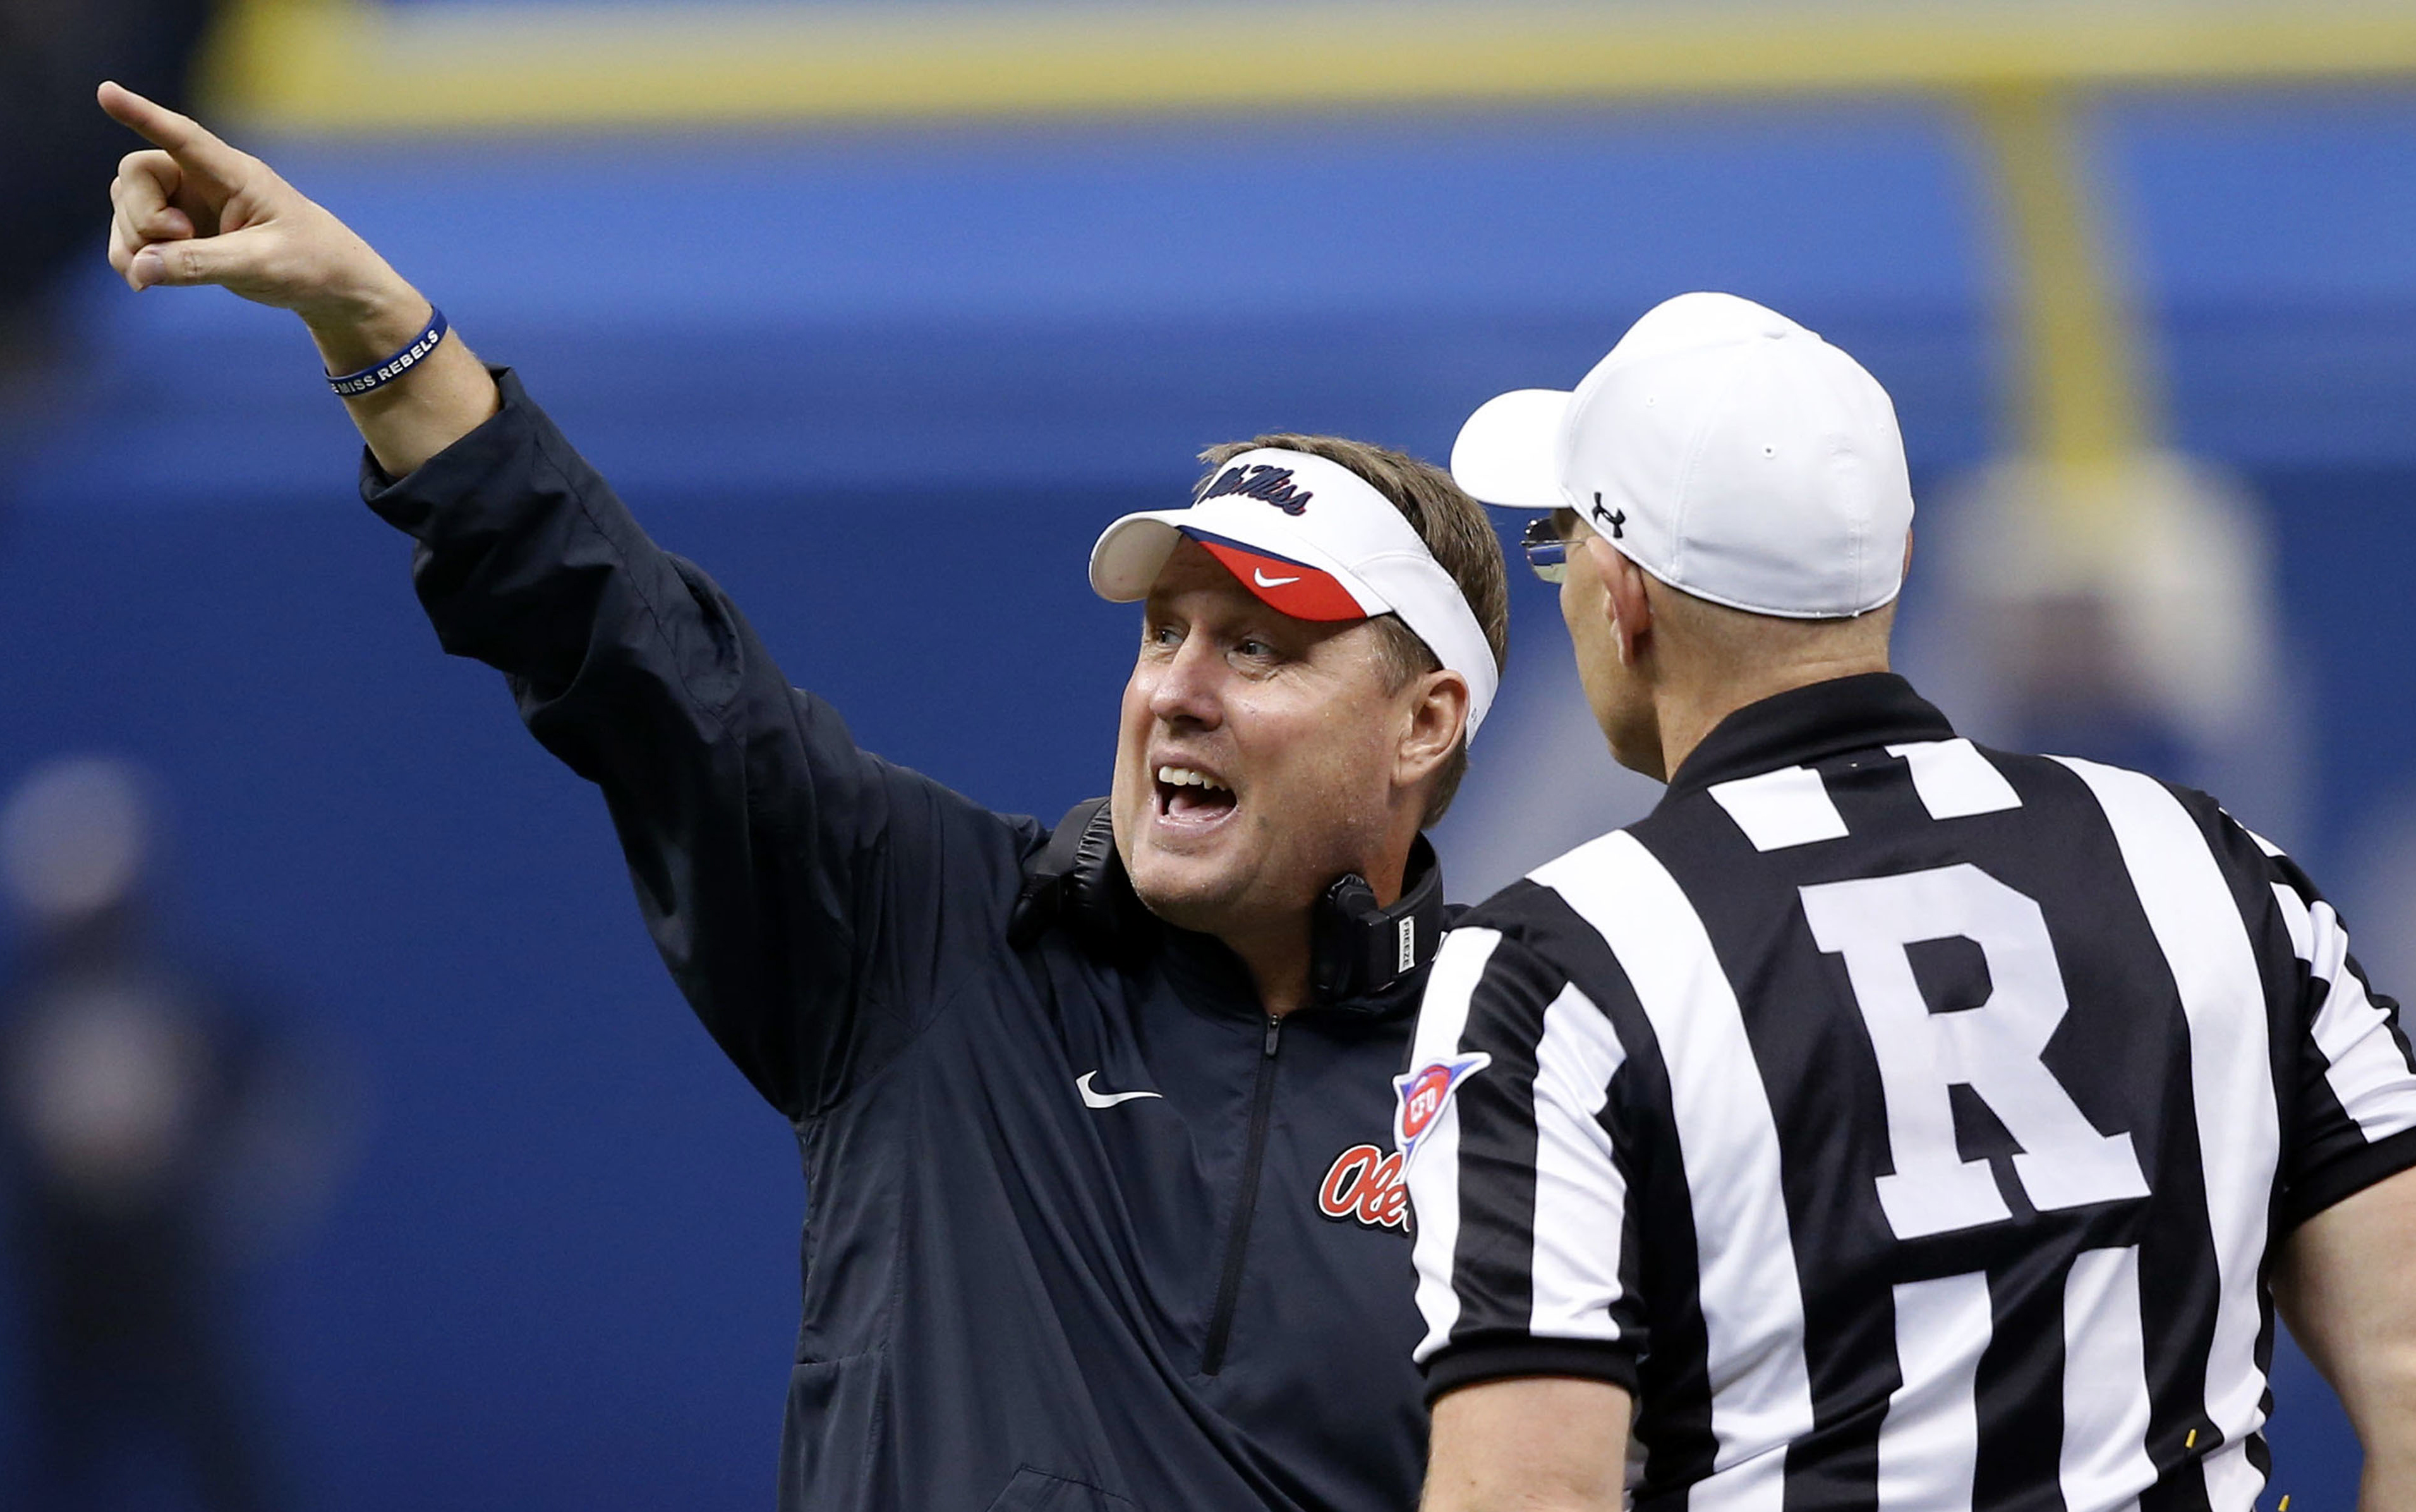 FILE - In this Jan. 1, 2016, file photo, Mississippi head coach Hugh Freeze, left, challenges an official in the first half of the Sugar Bowl college football game against Oklahoma State in New Orleans. Mississippi, led by fifth-year head coach Freeze, ha